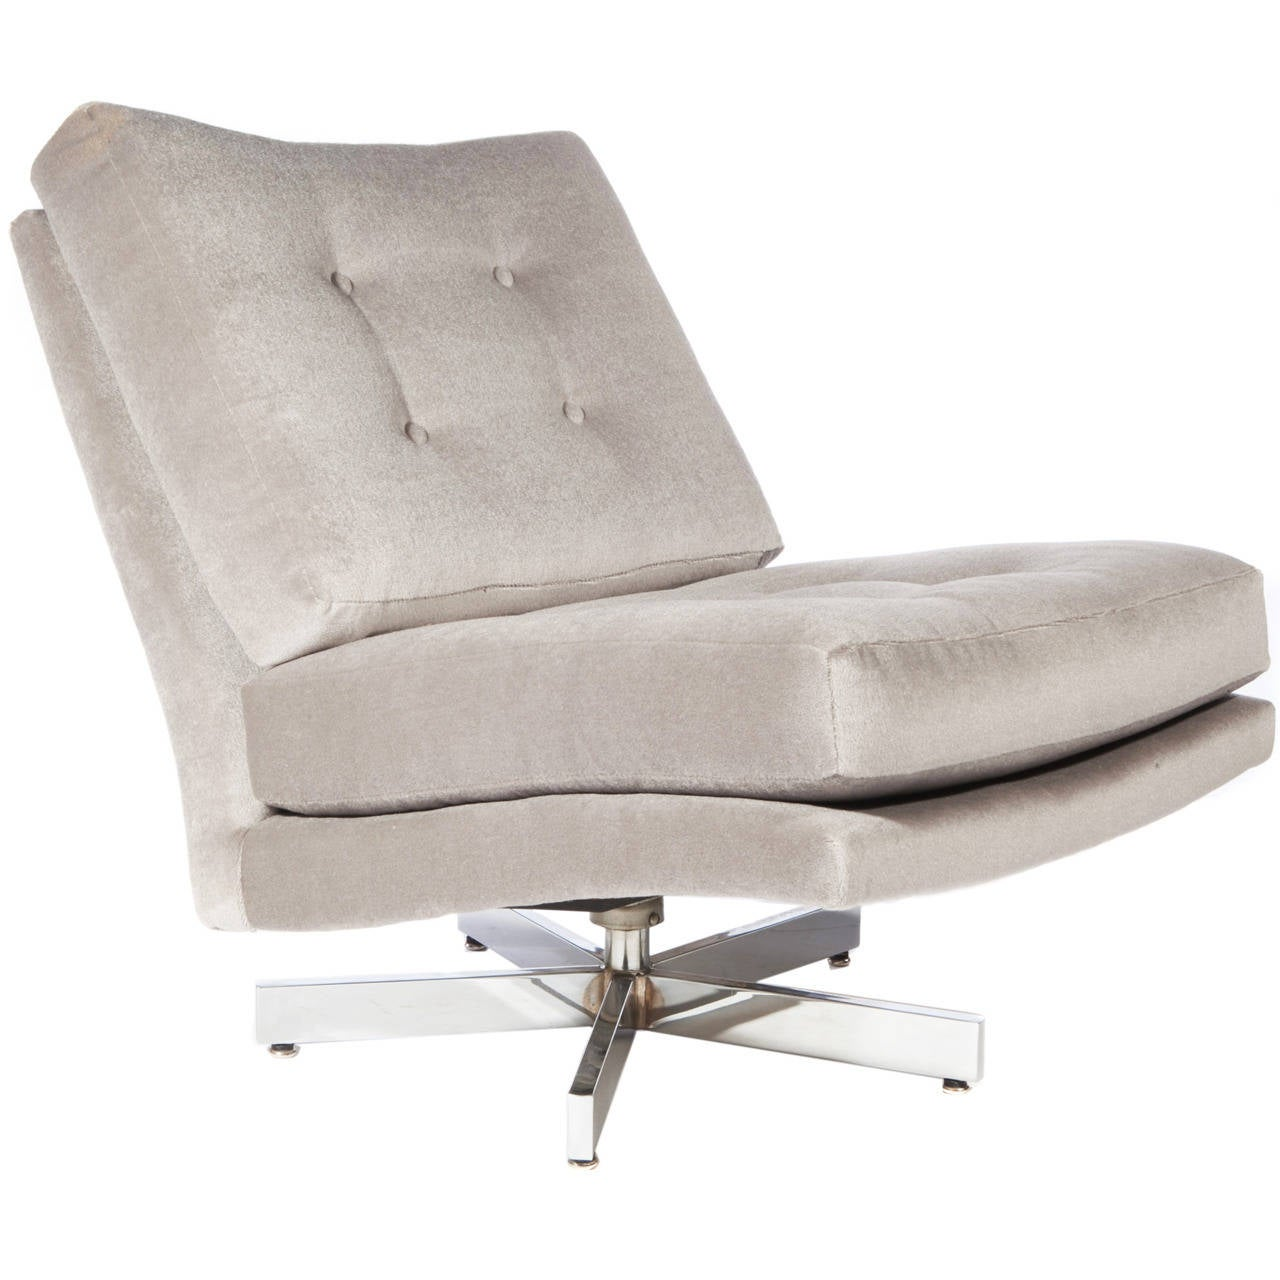 Milo Baughman Swivel Chair 1